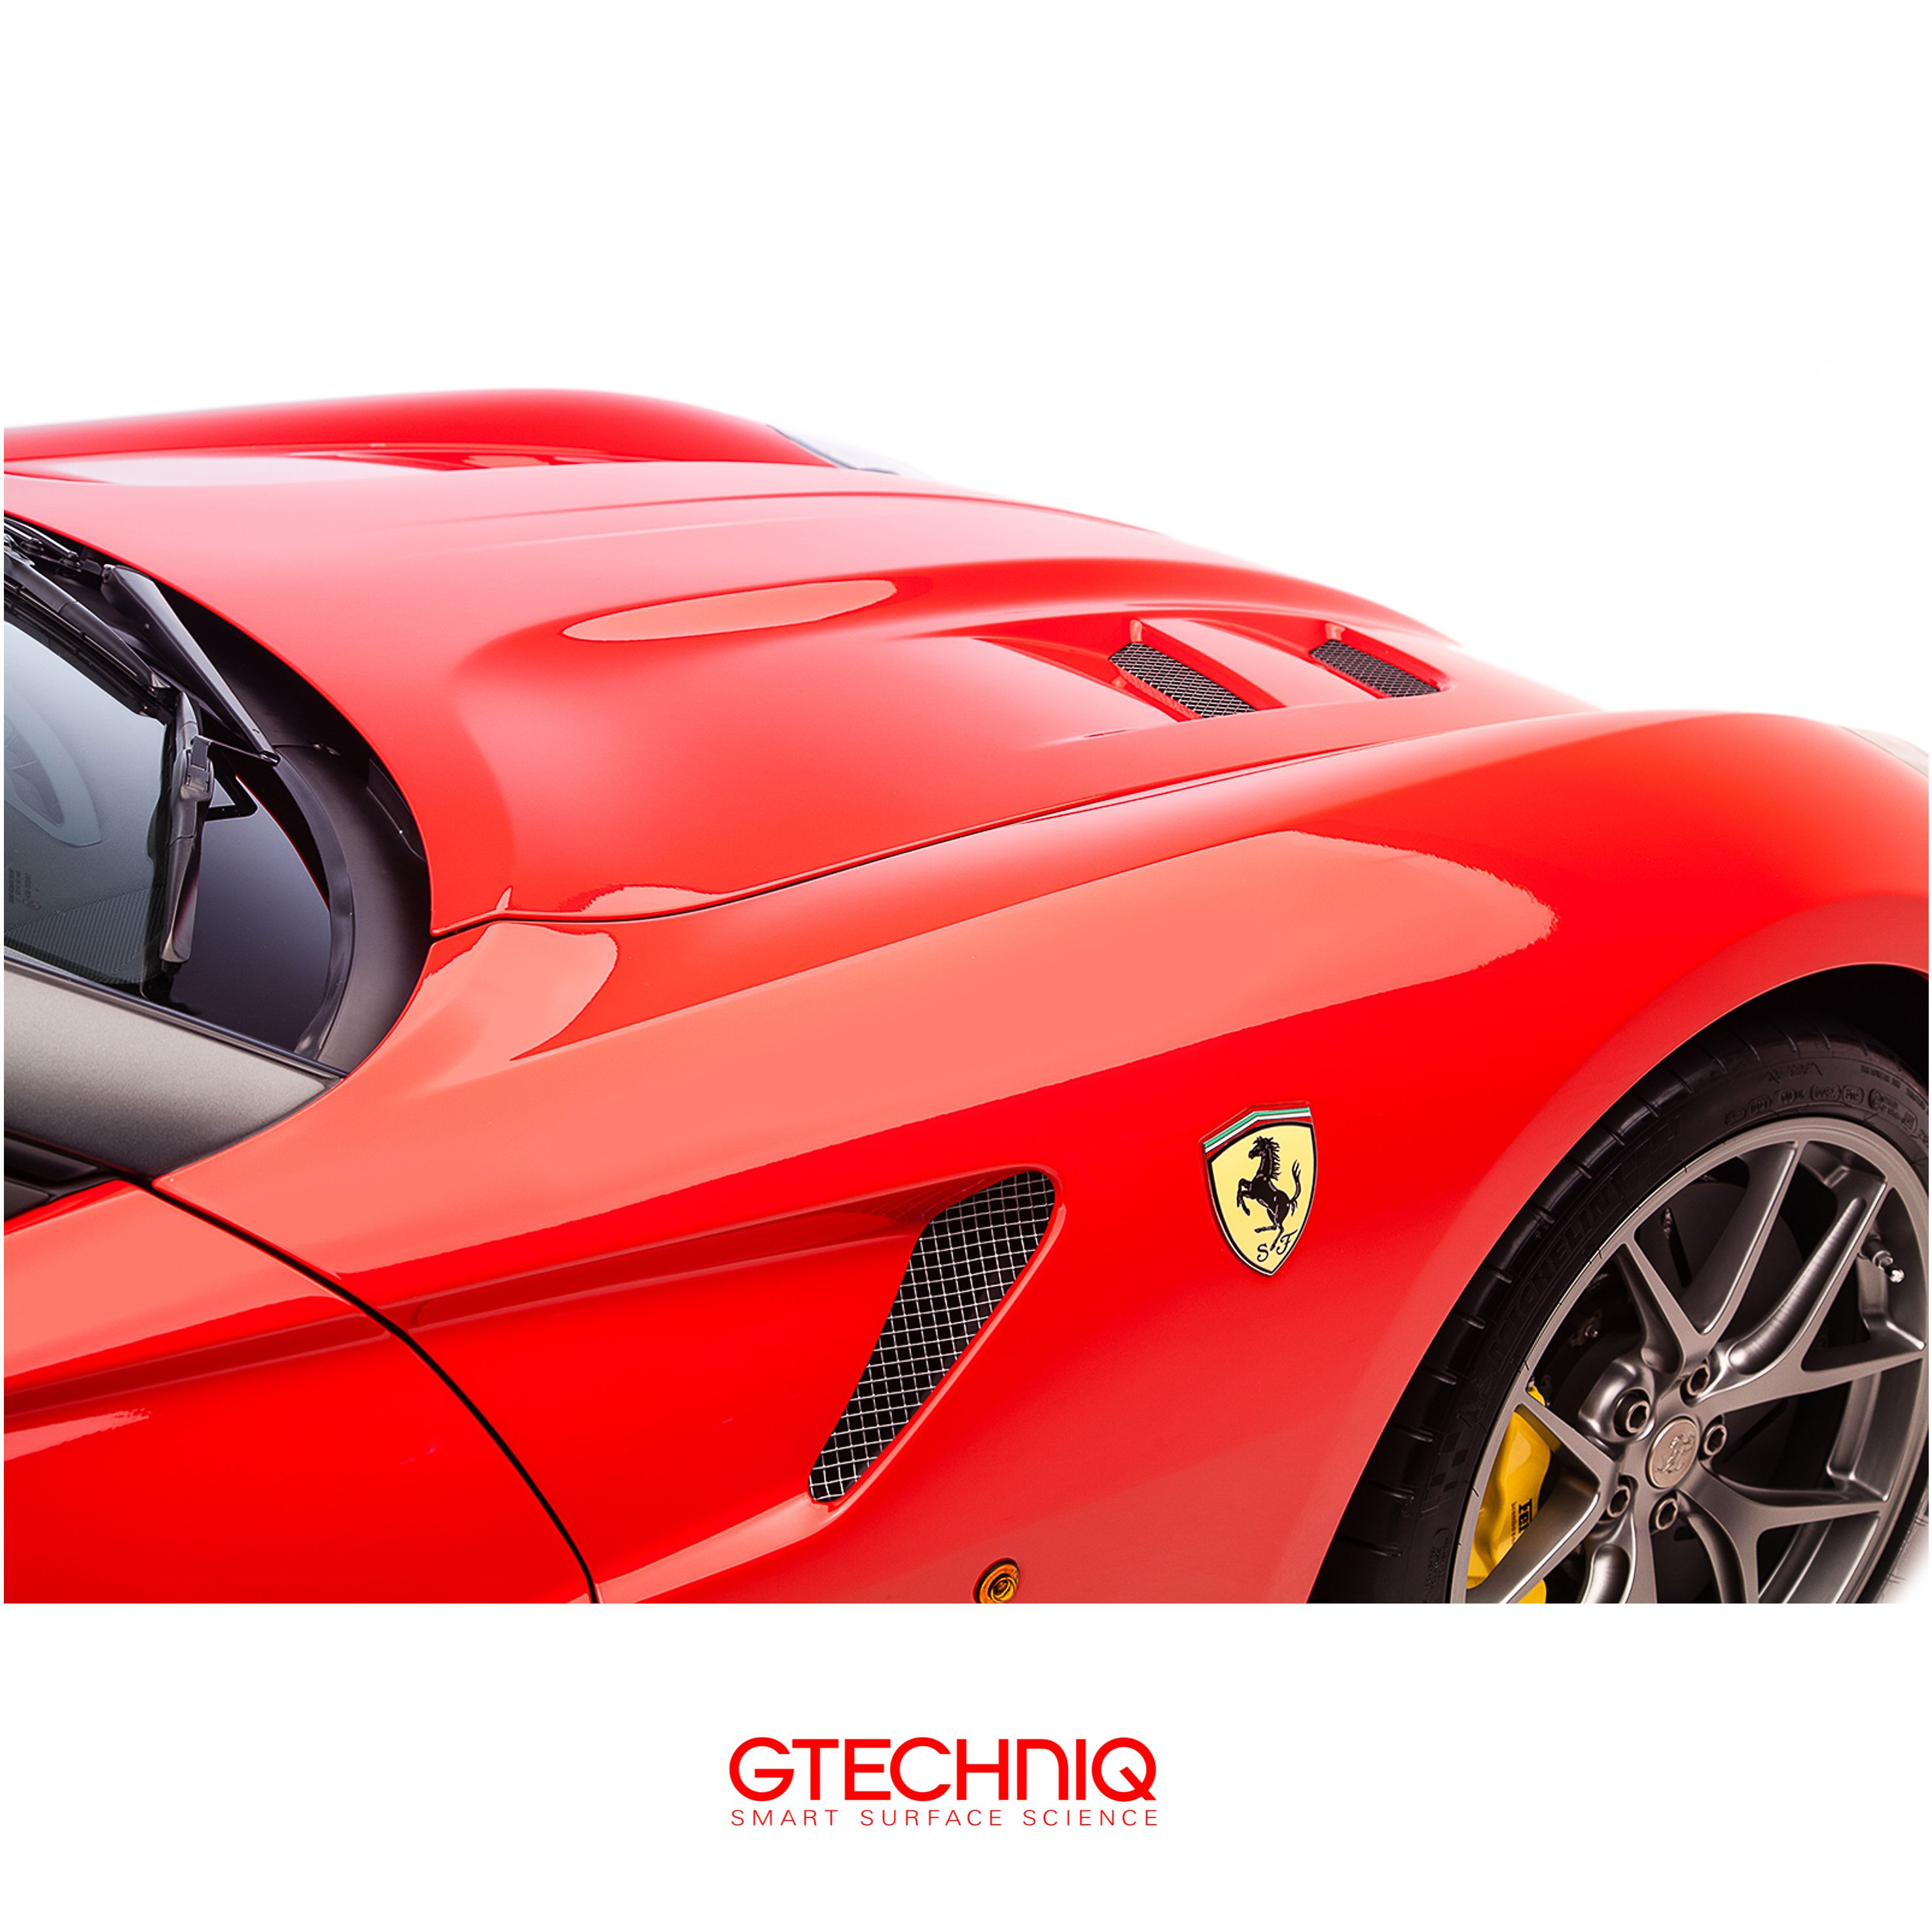 Ferrari 599 Protected By #Gtechniq. Protection Applied By